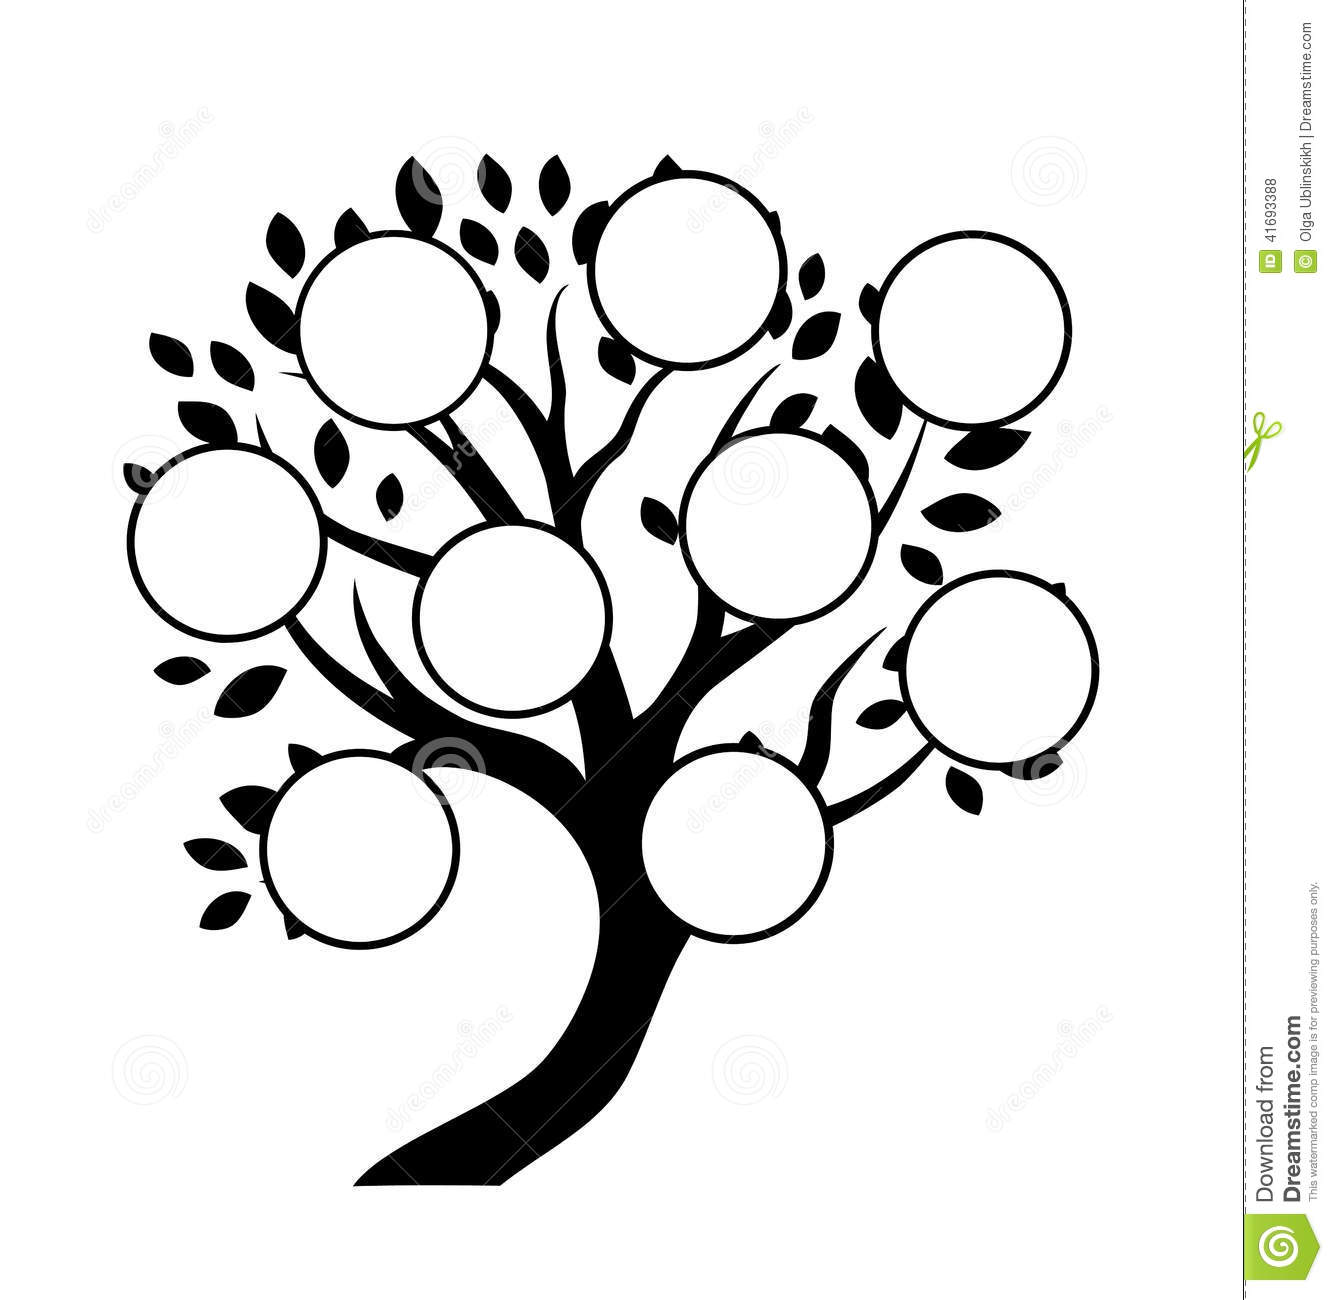 decorative family tree design royalty free stock photos family tree design ideas - Family Tree Design Ideas